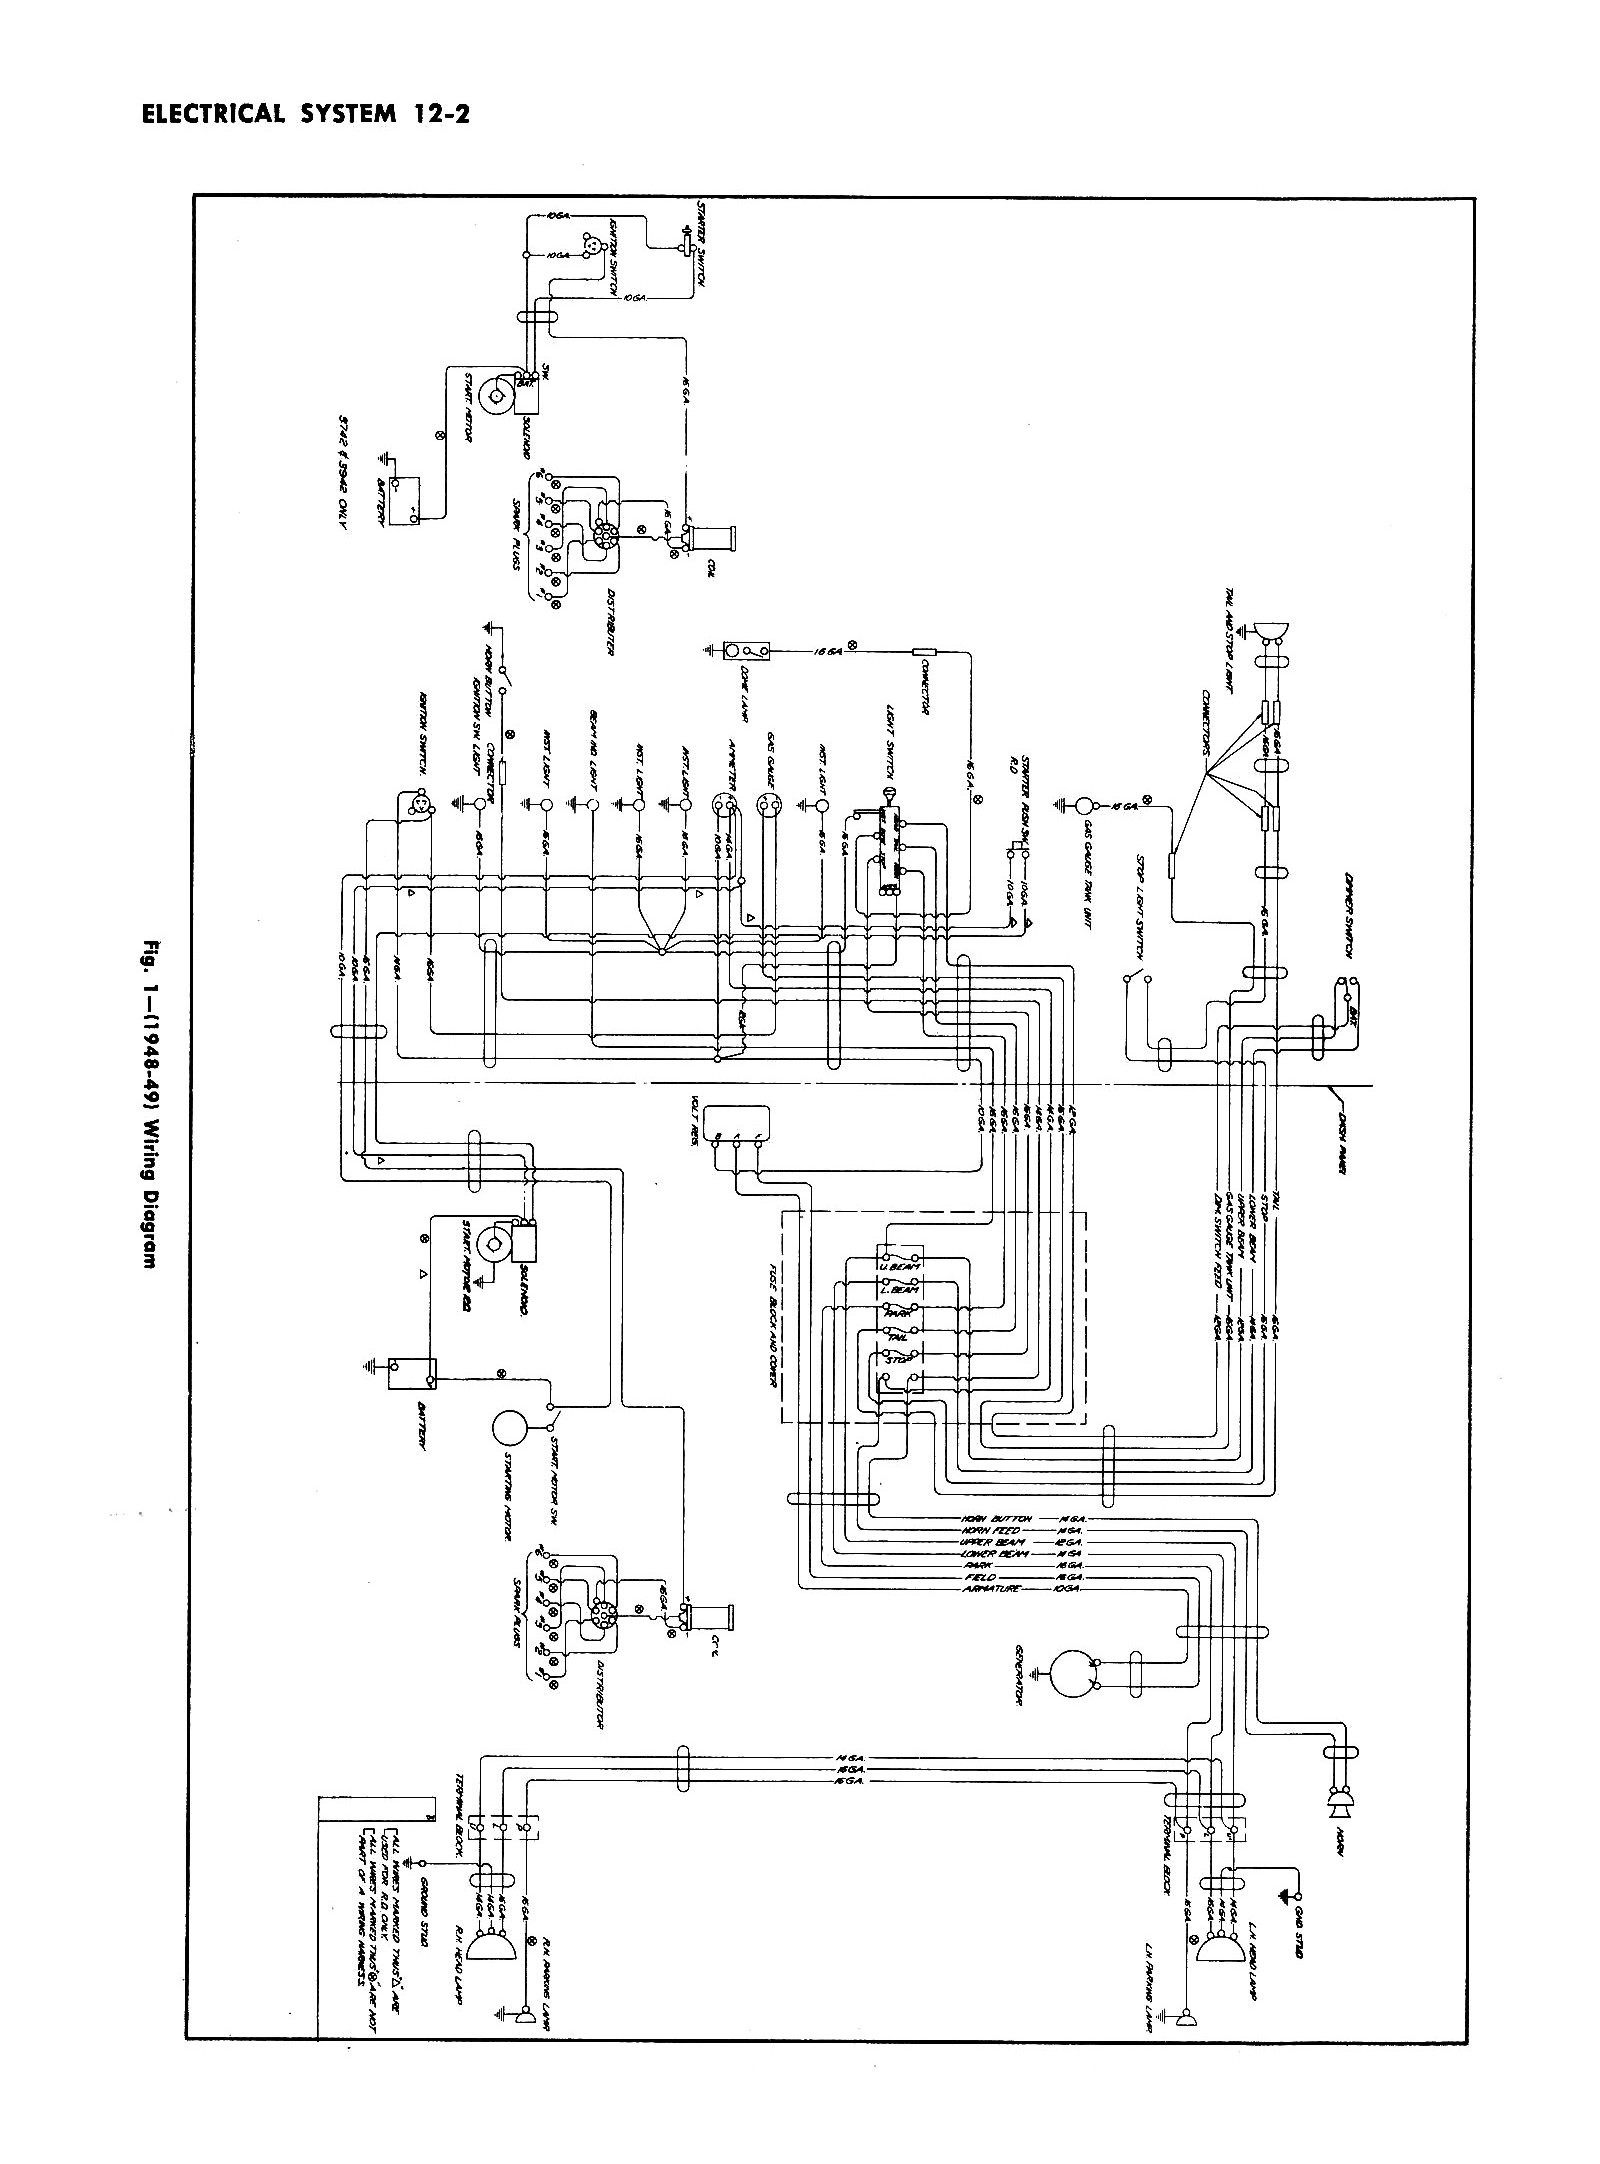 truck wiring diagrams wiring diagrams and schematics 82 chevy truck wiring diagram diagrams and schematics